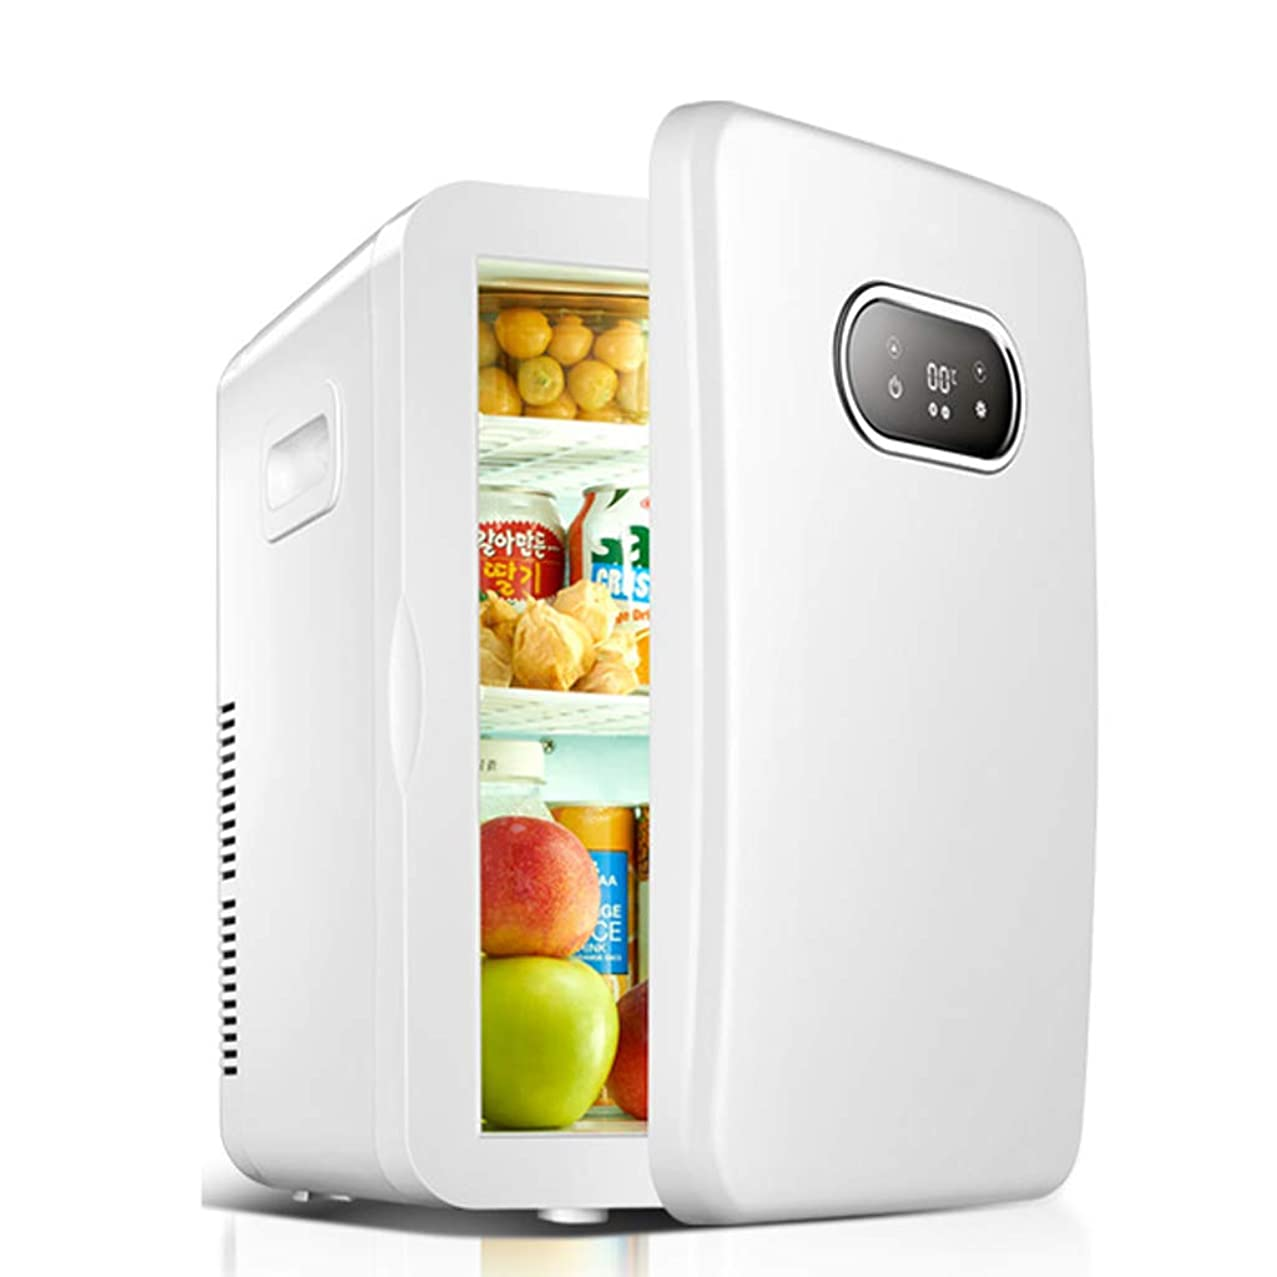 Portable refrigerator Lxn Digital Display Version Electric Cooler and Warmer for Car and Home - 20 Liter – Holds 30 Cans - Dual 110V/220V AC House and 12V DC Vehicle Plugs